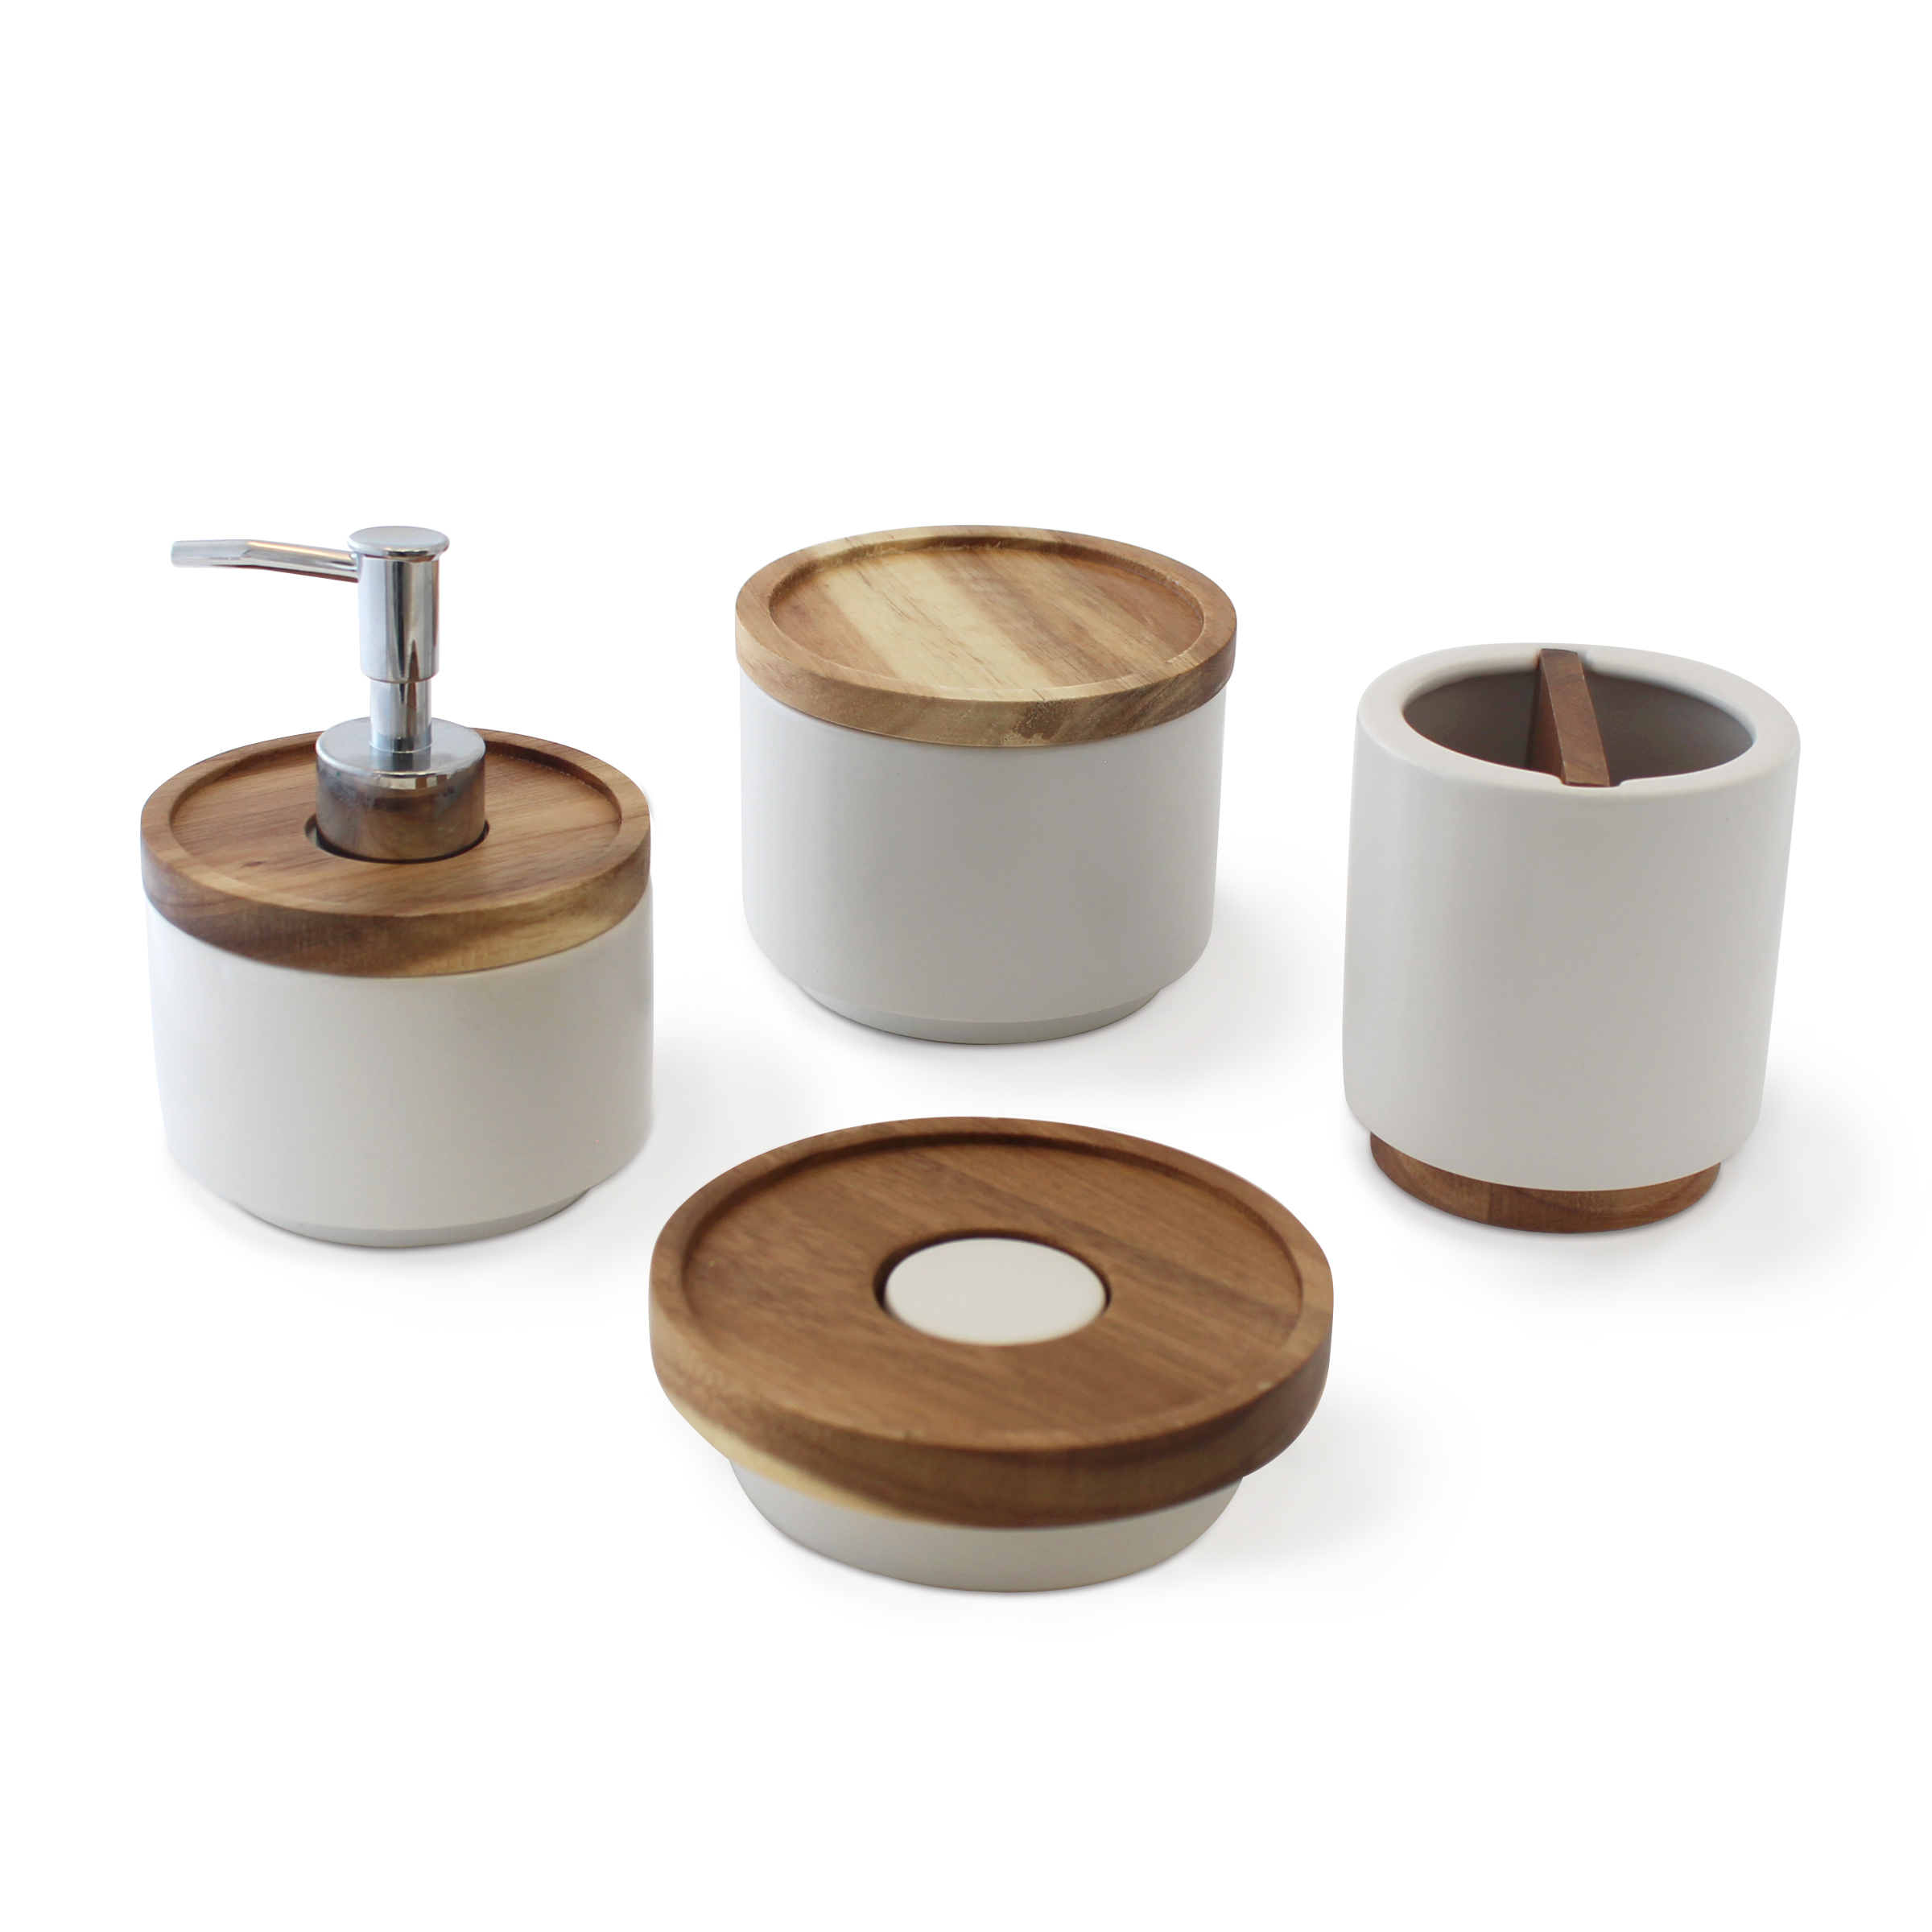 Balito ceramic and wood accessory set